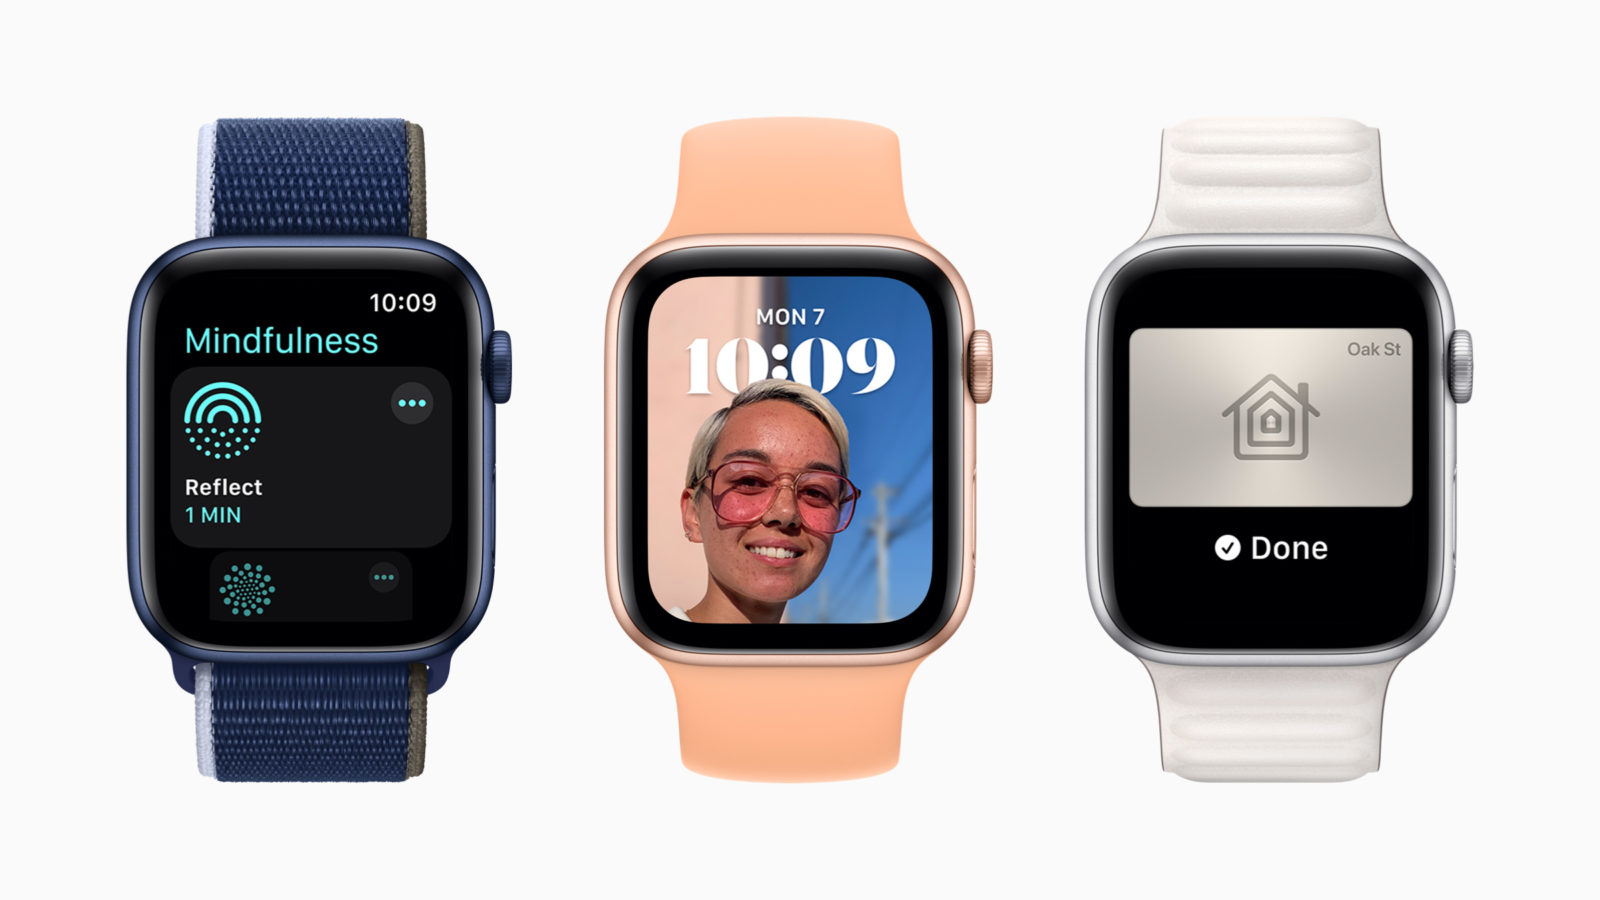 Here's what to look forward to when you update your Apple Watch to watchOS 8